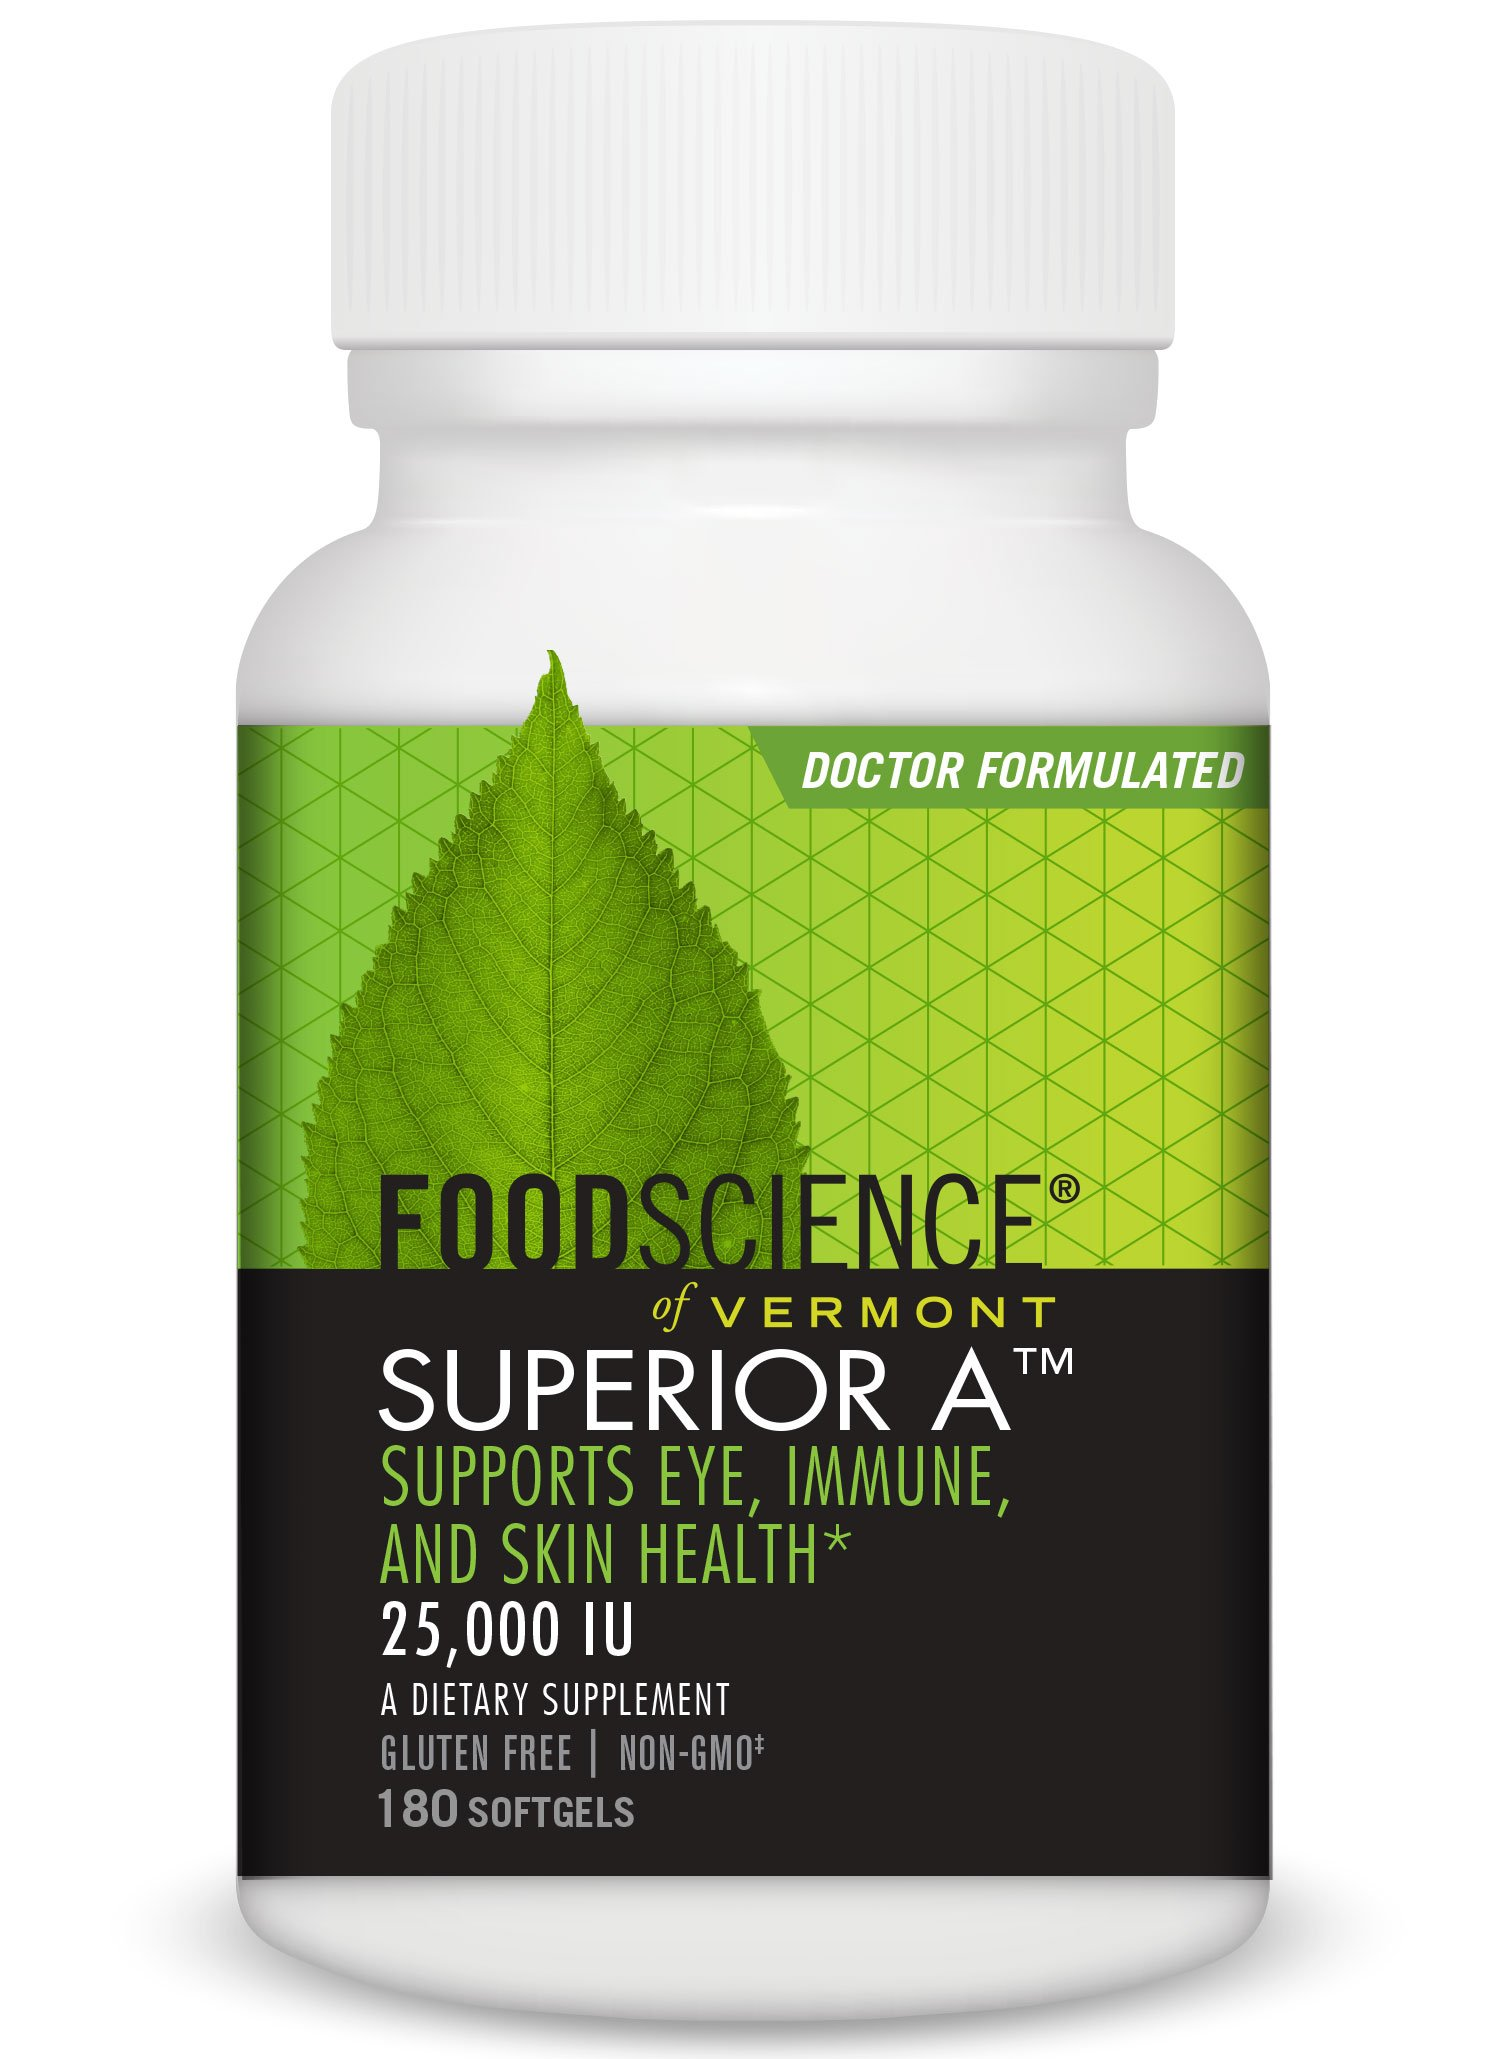 FoodScience of Vermont Superior A, Beta Carotene Daily Supplement, 25,000 IU Soft Gels, 180 Count